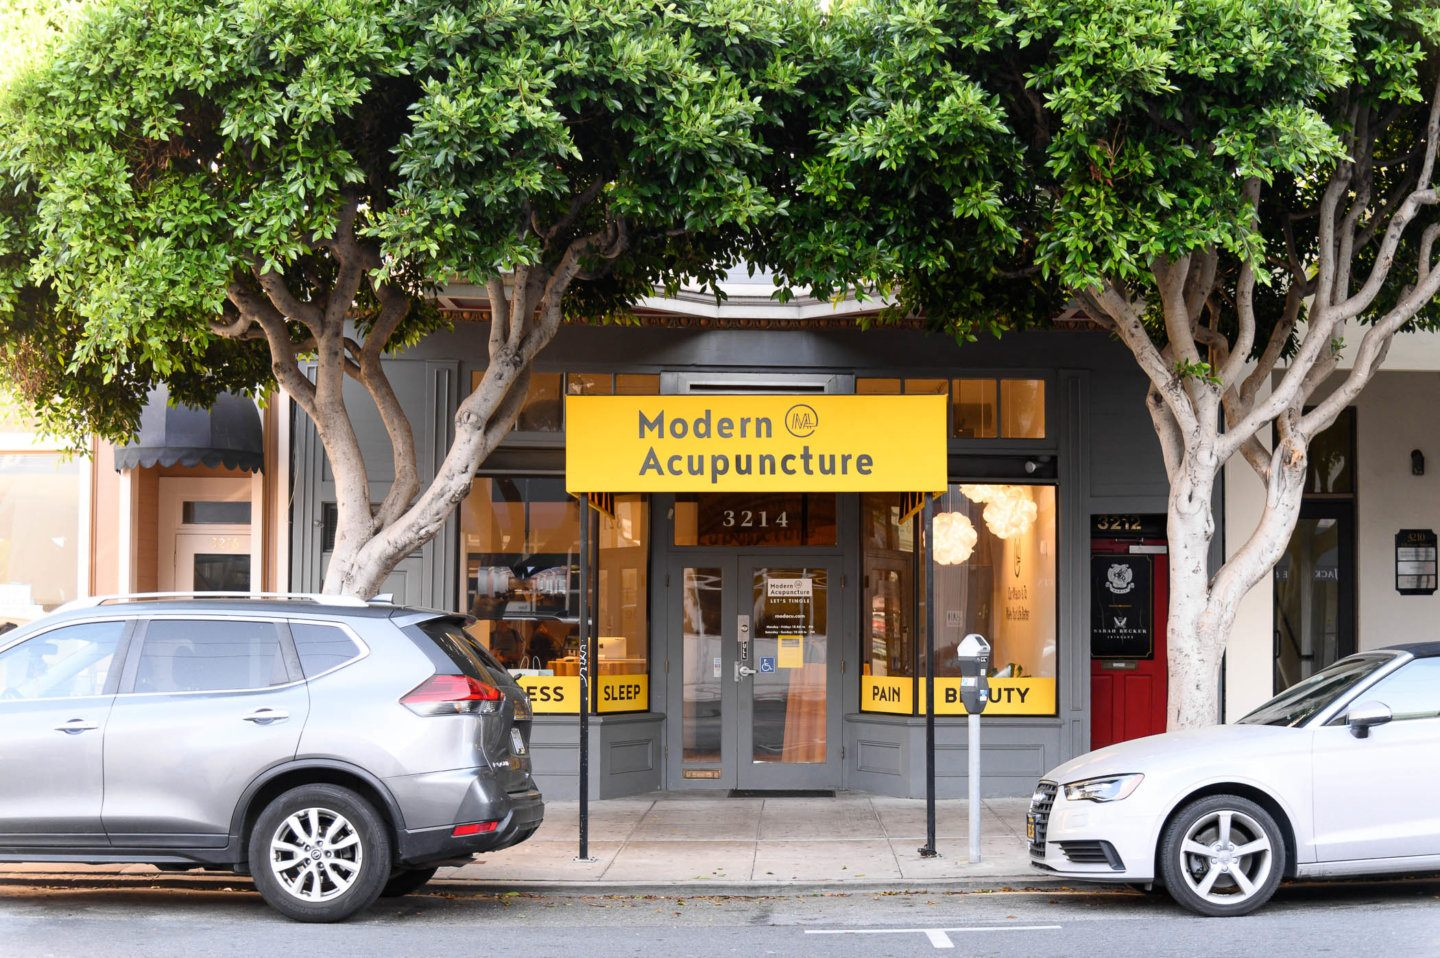 Modern Acupuncture San Francisco review by blogger What The Fab